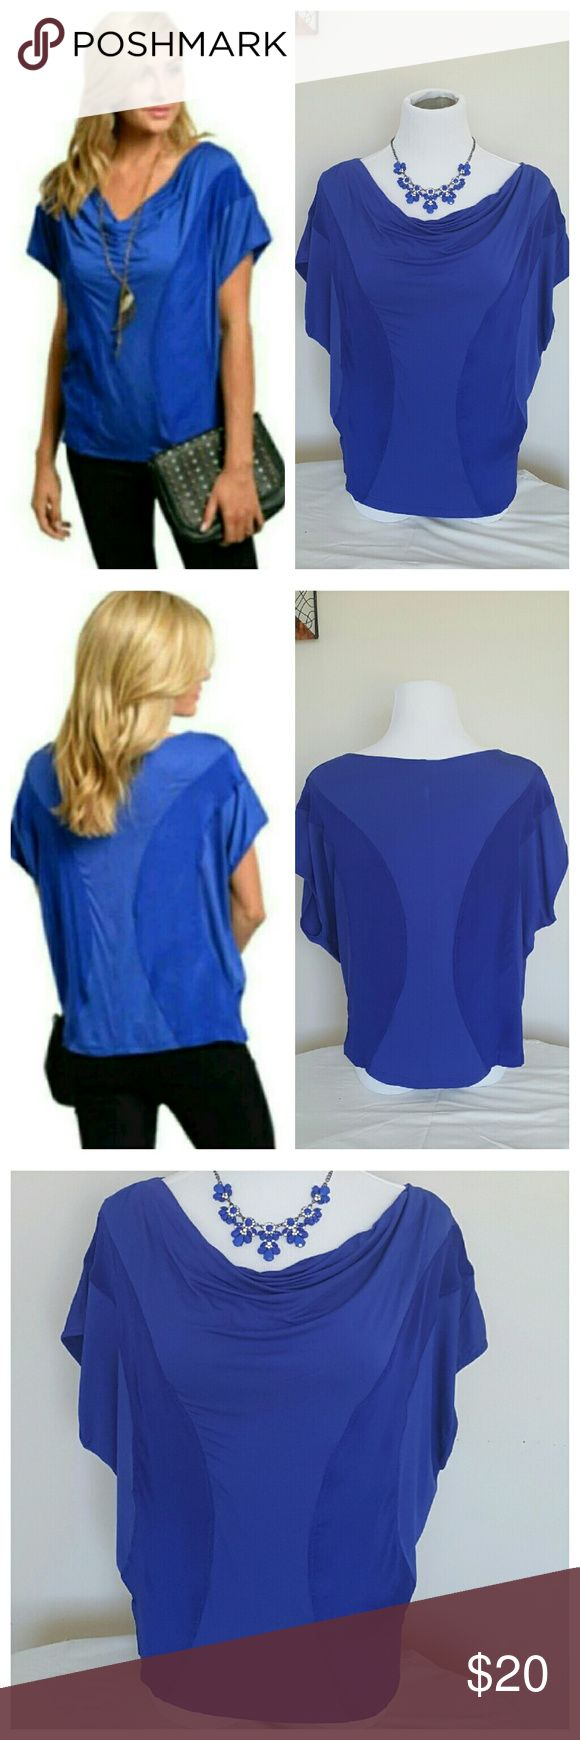 "Royal Blue Short Sleeve Silk Top - Small New with tags, size small. Vibrant Royal Blue top, with 2 shades of blue. Partial cowl neck with short sleeve batwing style sleeves. 24"" Length. Shell: 95% Rayon/5% Spandex. Contrast: 100% Silk. Tops Blouses"